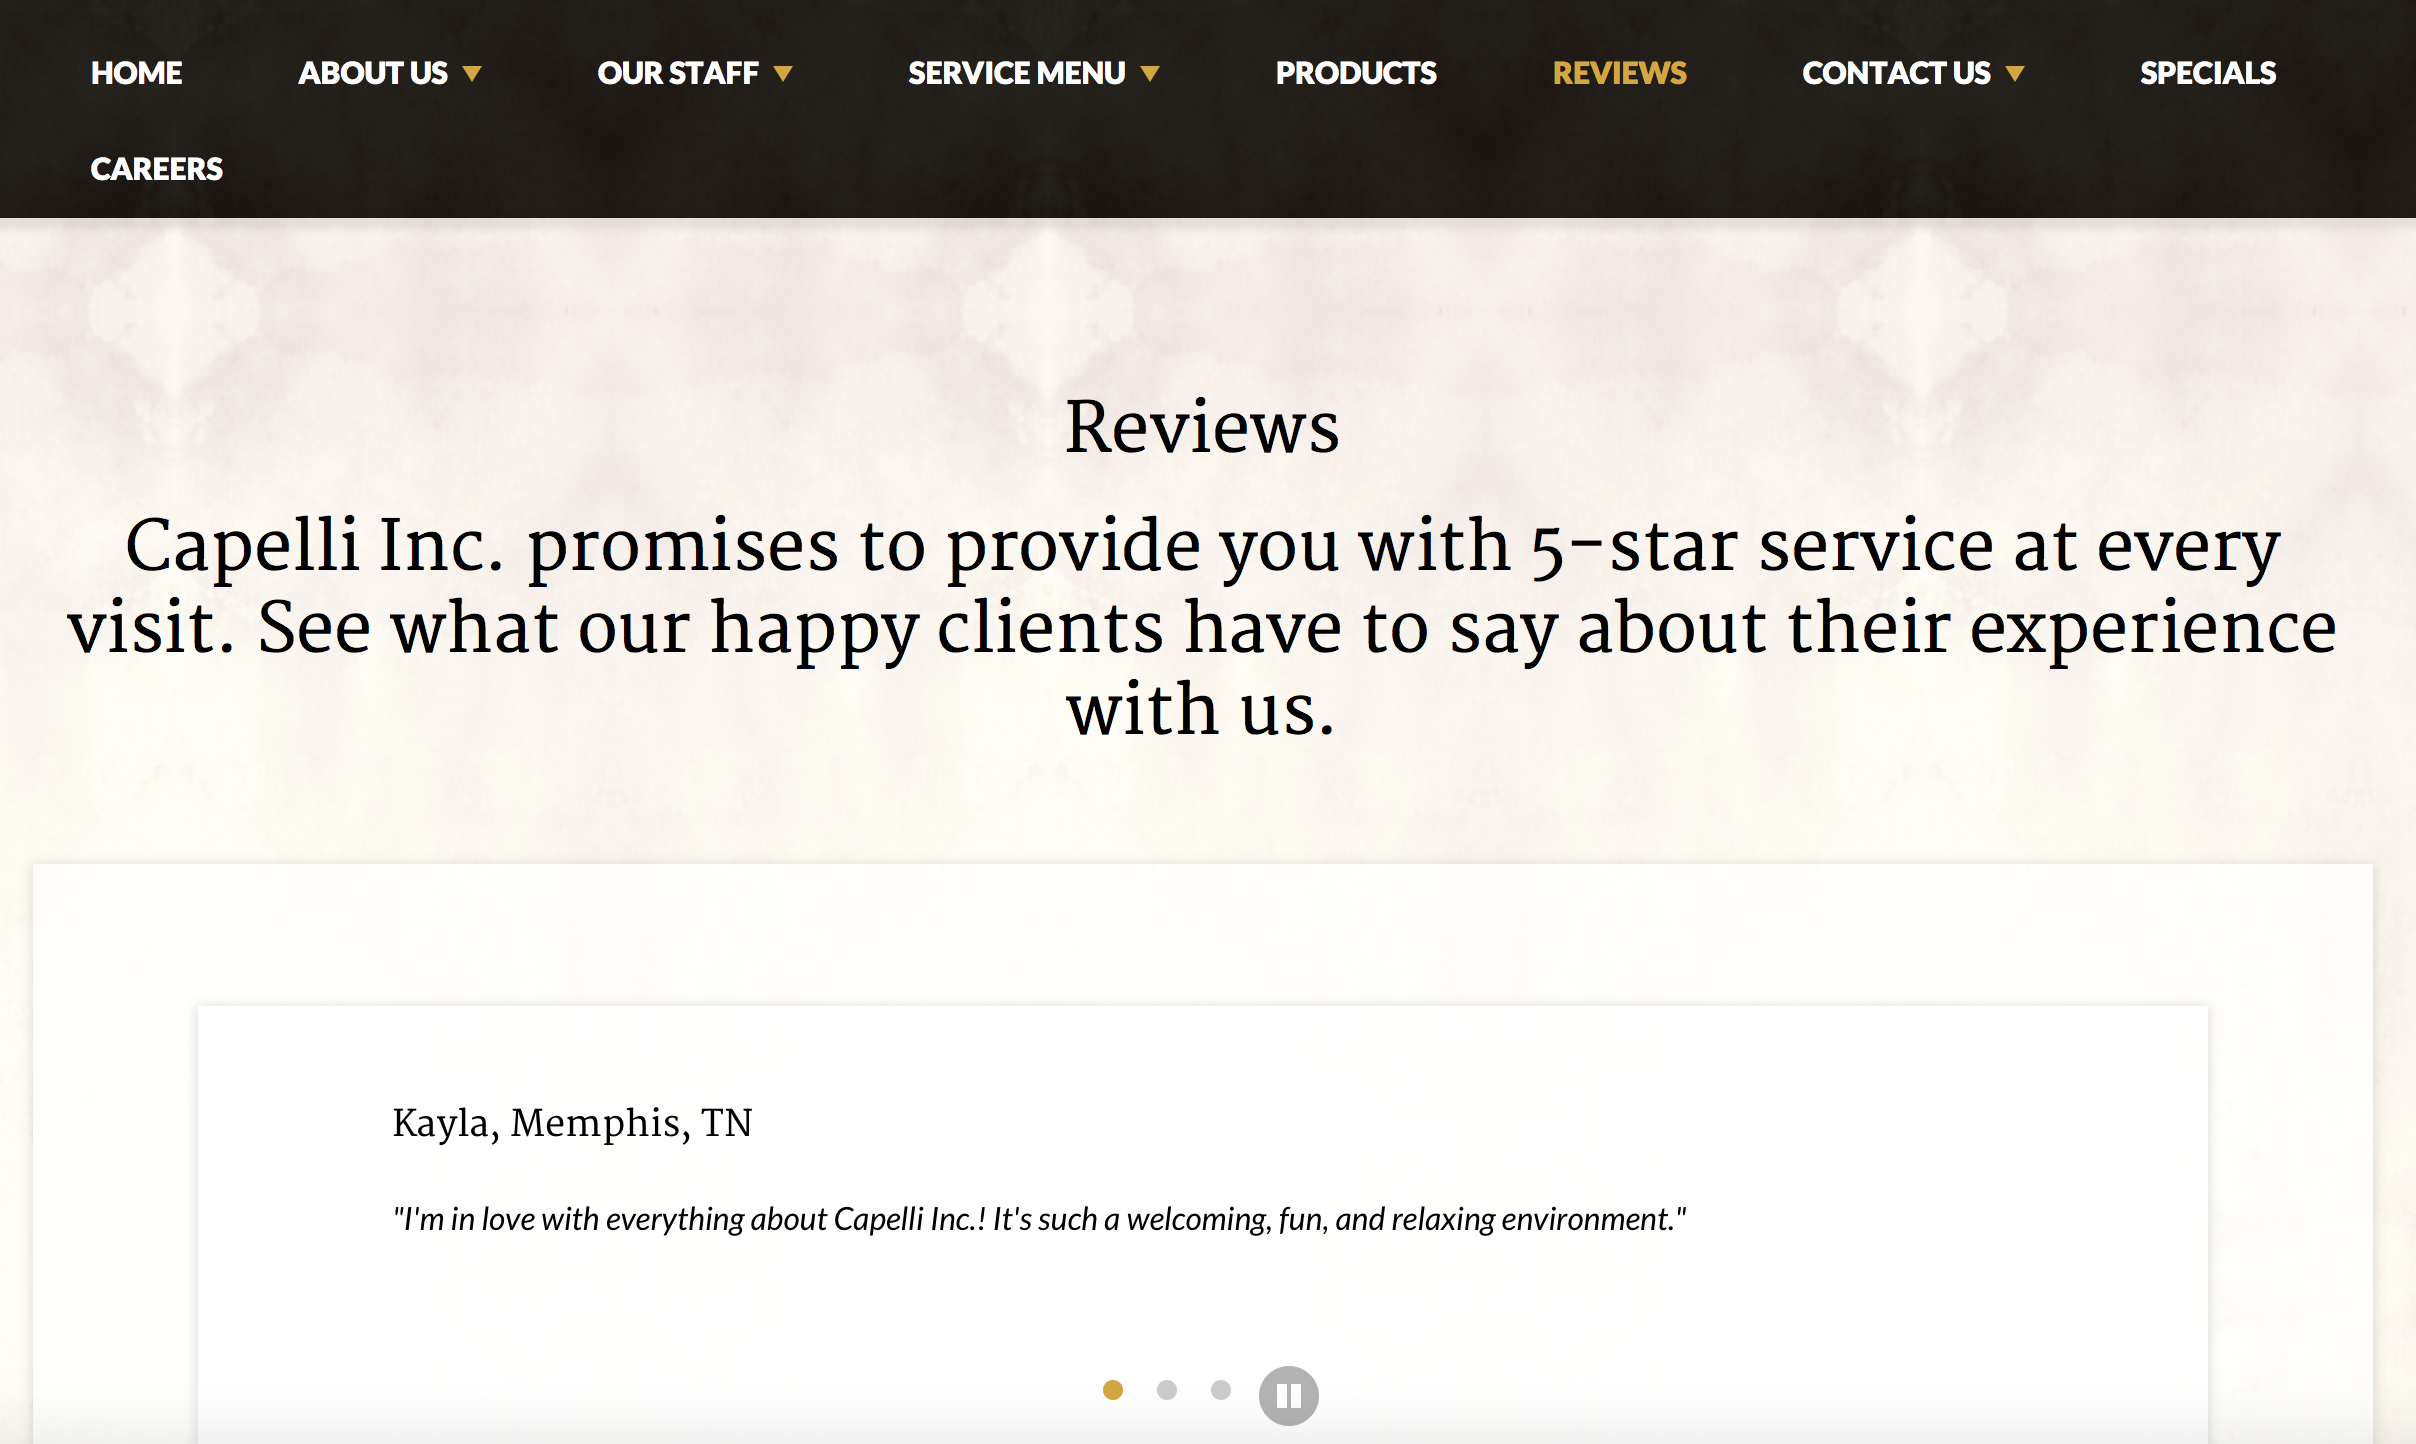 Memphis salon,  Capelli Inc. , does a great job showcasing their reviews on their website!